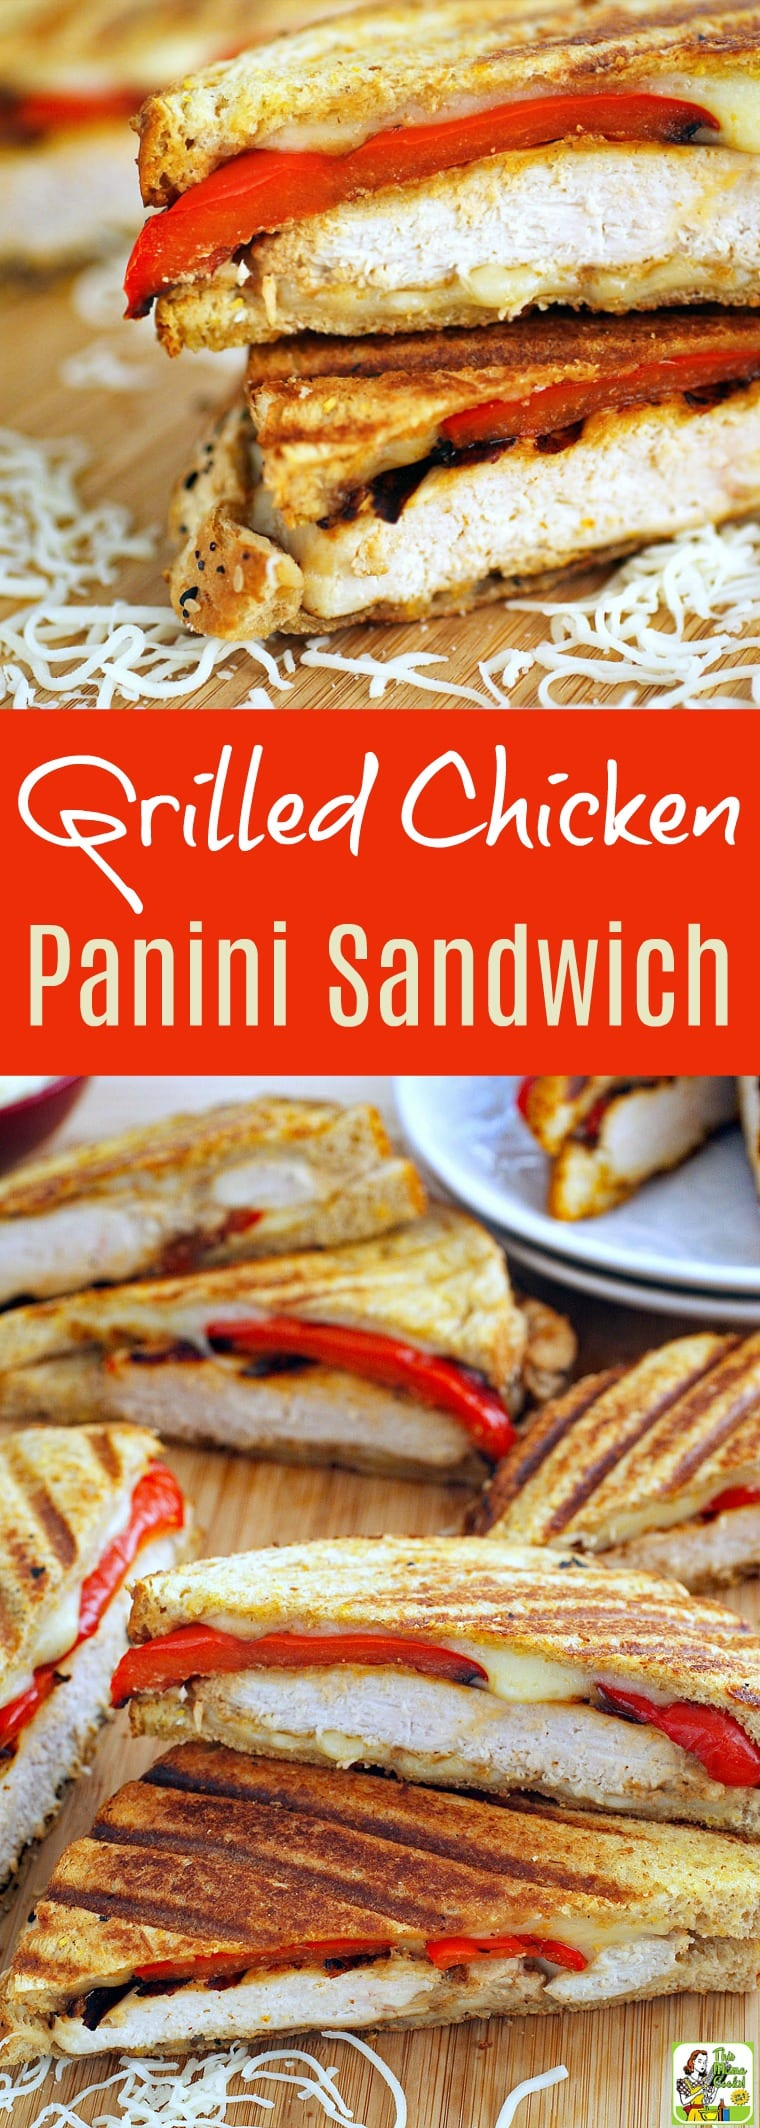 Looking for new grilled chicken meal ideas for easy weeknight dinners? Click to get this Grilled Chicken Panini Sandwich recipe. Super tasty because of the Greek yogurt marinated chicken. Serve on your favorite gluten free bread to make a gluten free grilled chicken panini recipe.